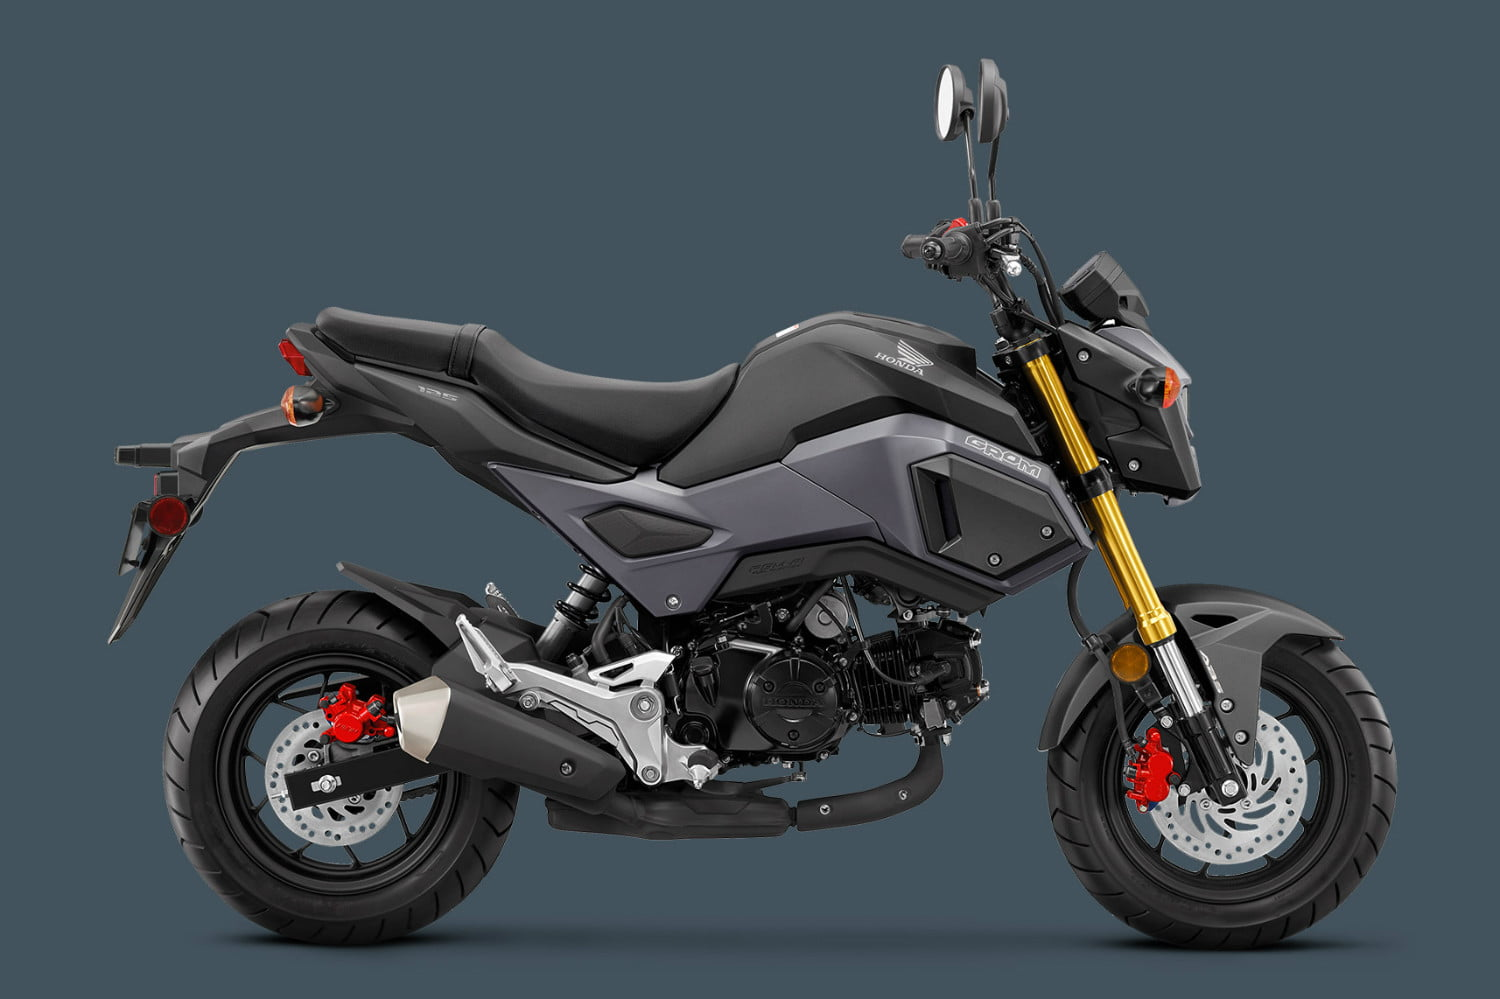 The 2018 Honda Grom Motorcycle Adds ABS as an Option ...